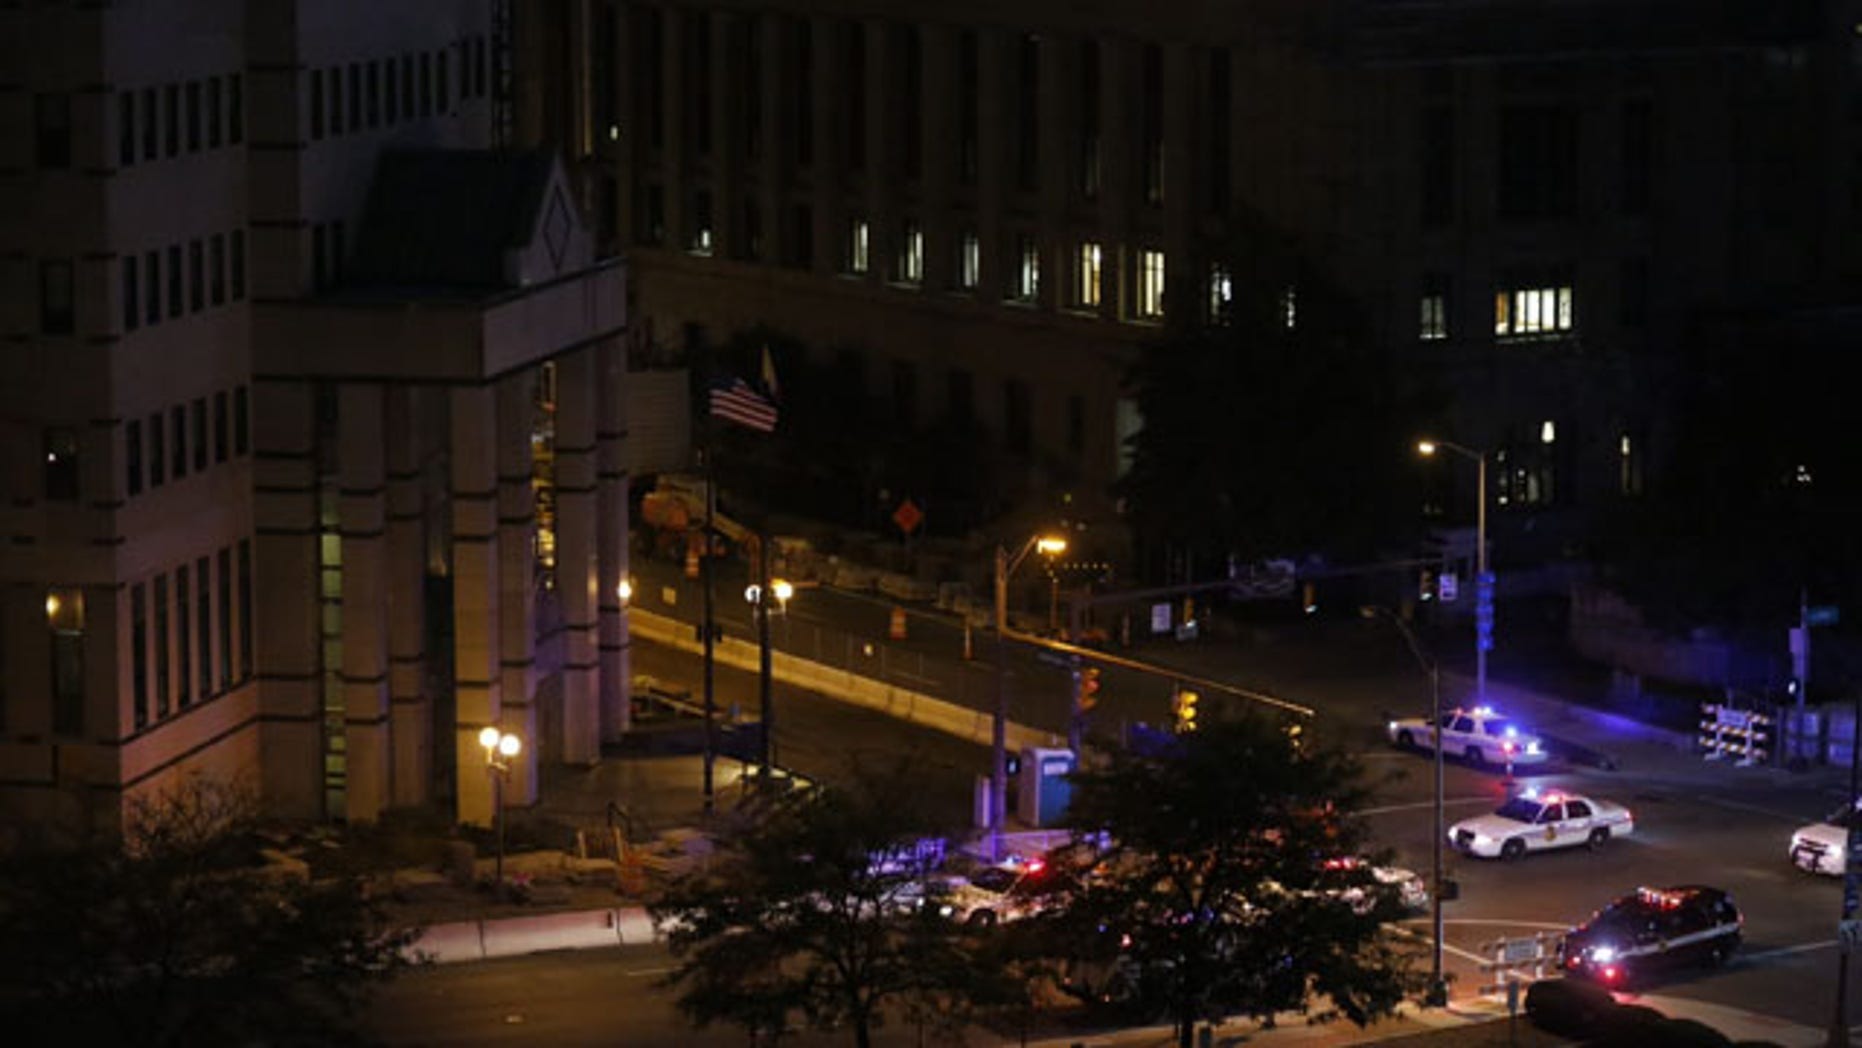 September 24, 2013: Dozens of police cars and fire trucks surround the Columbus Division of Police headquarters Tuesday after reports of an explosion. A Columbus Fire Department official says firefighters and police have not found any visual evidence of an explosion. No injuries have been reported. (AP Photo/The Columbus Dispatch, Jonathan Quilter)